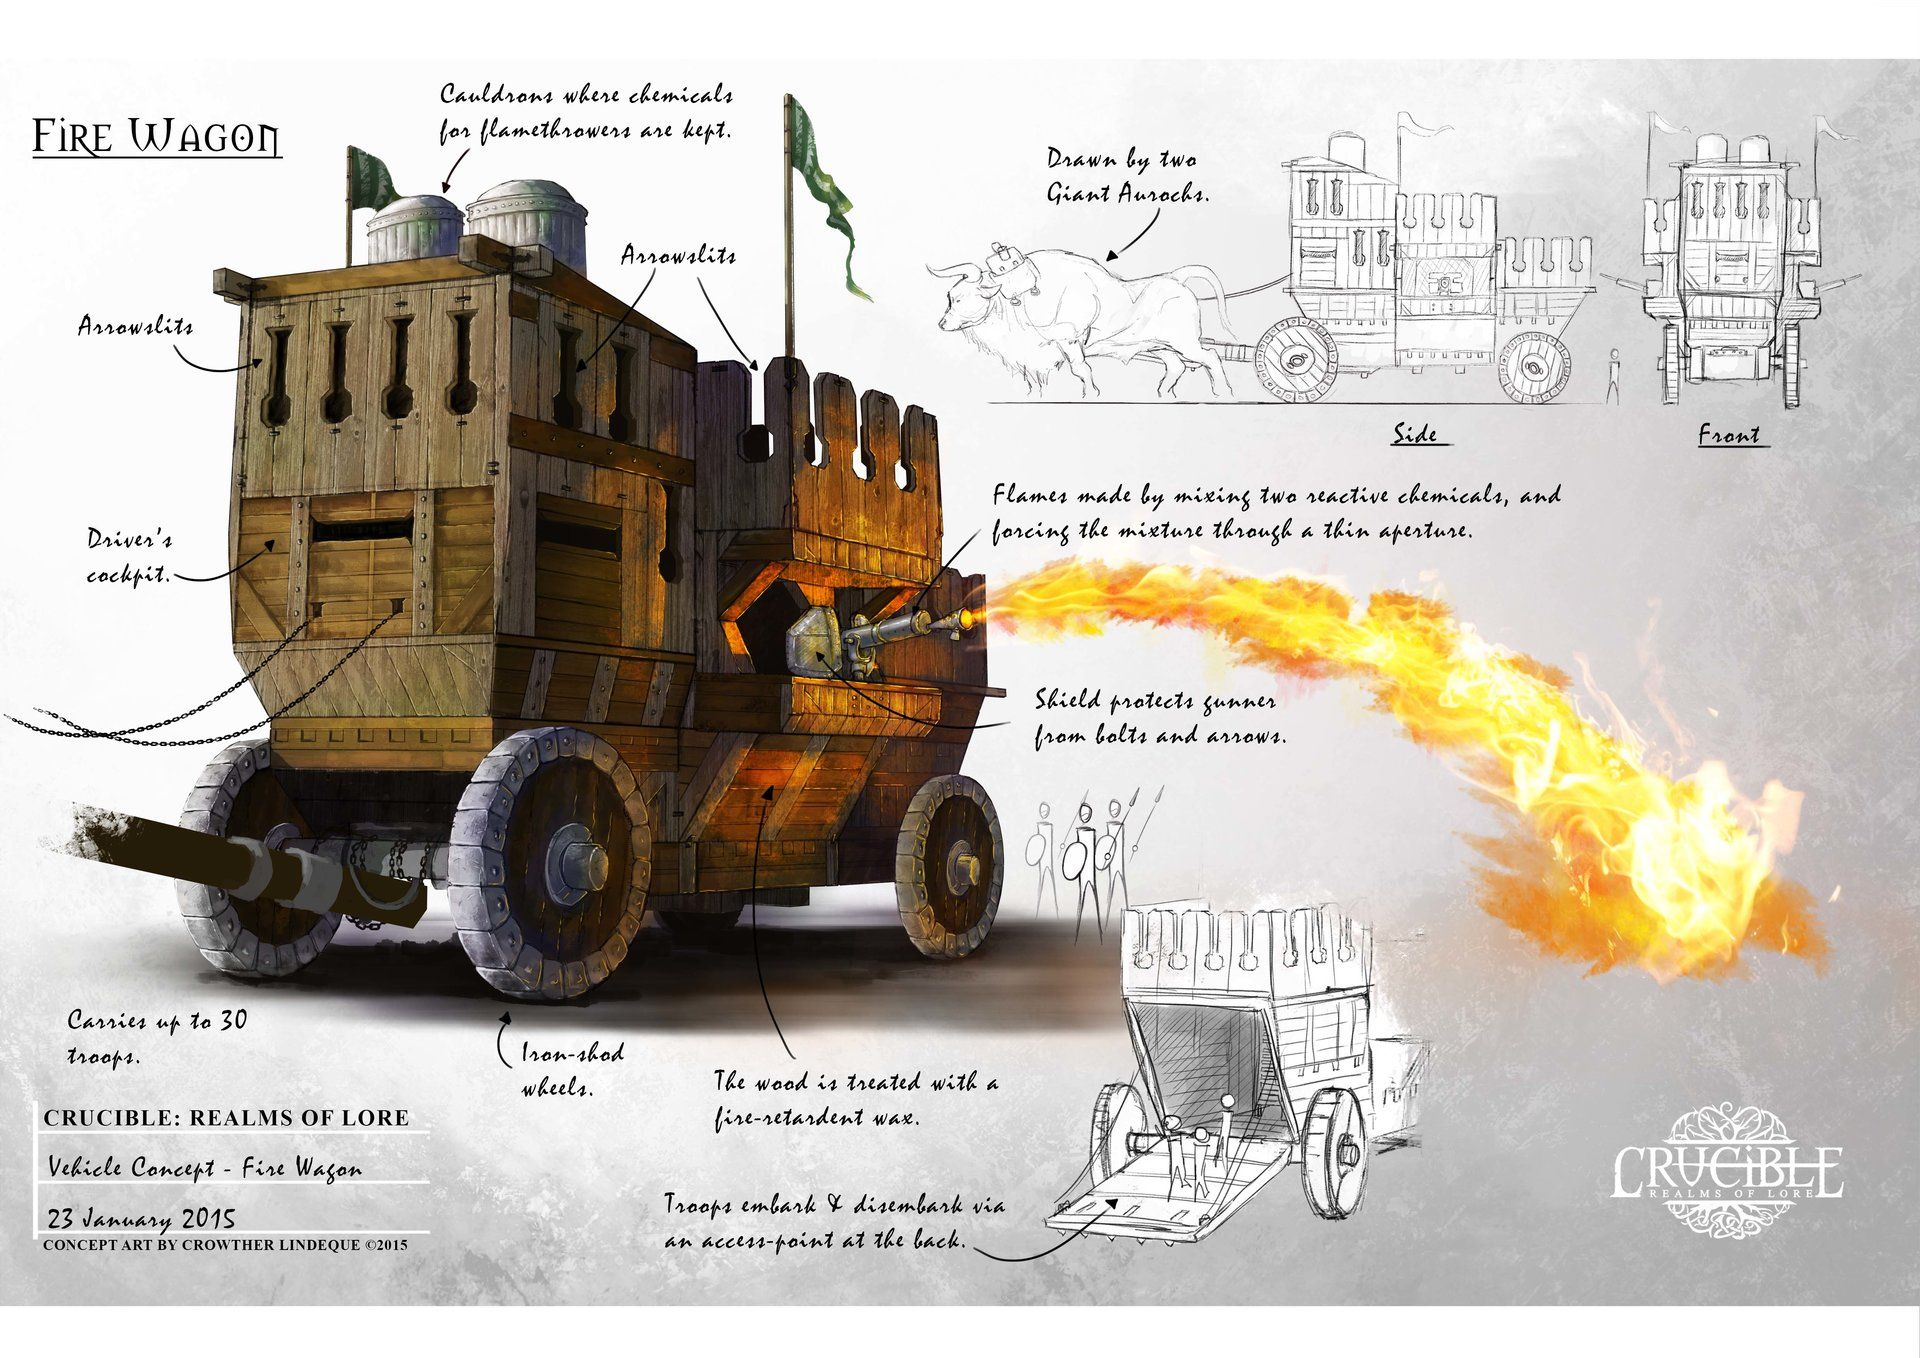 ArtStation - Fire Wagon, Crowther Lindeque